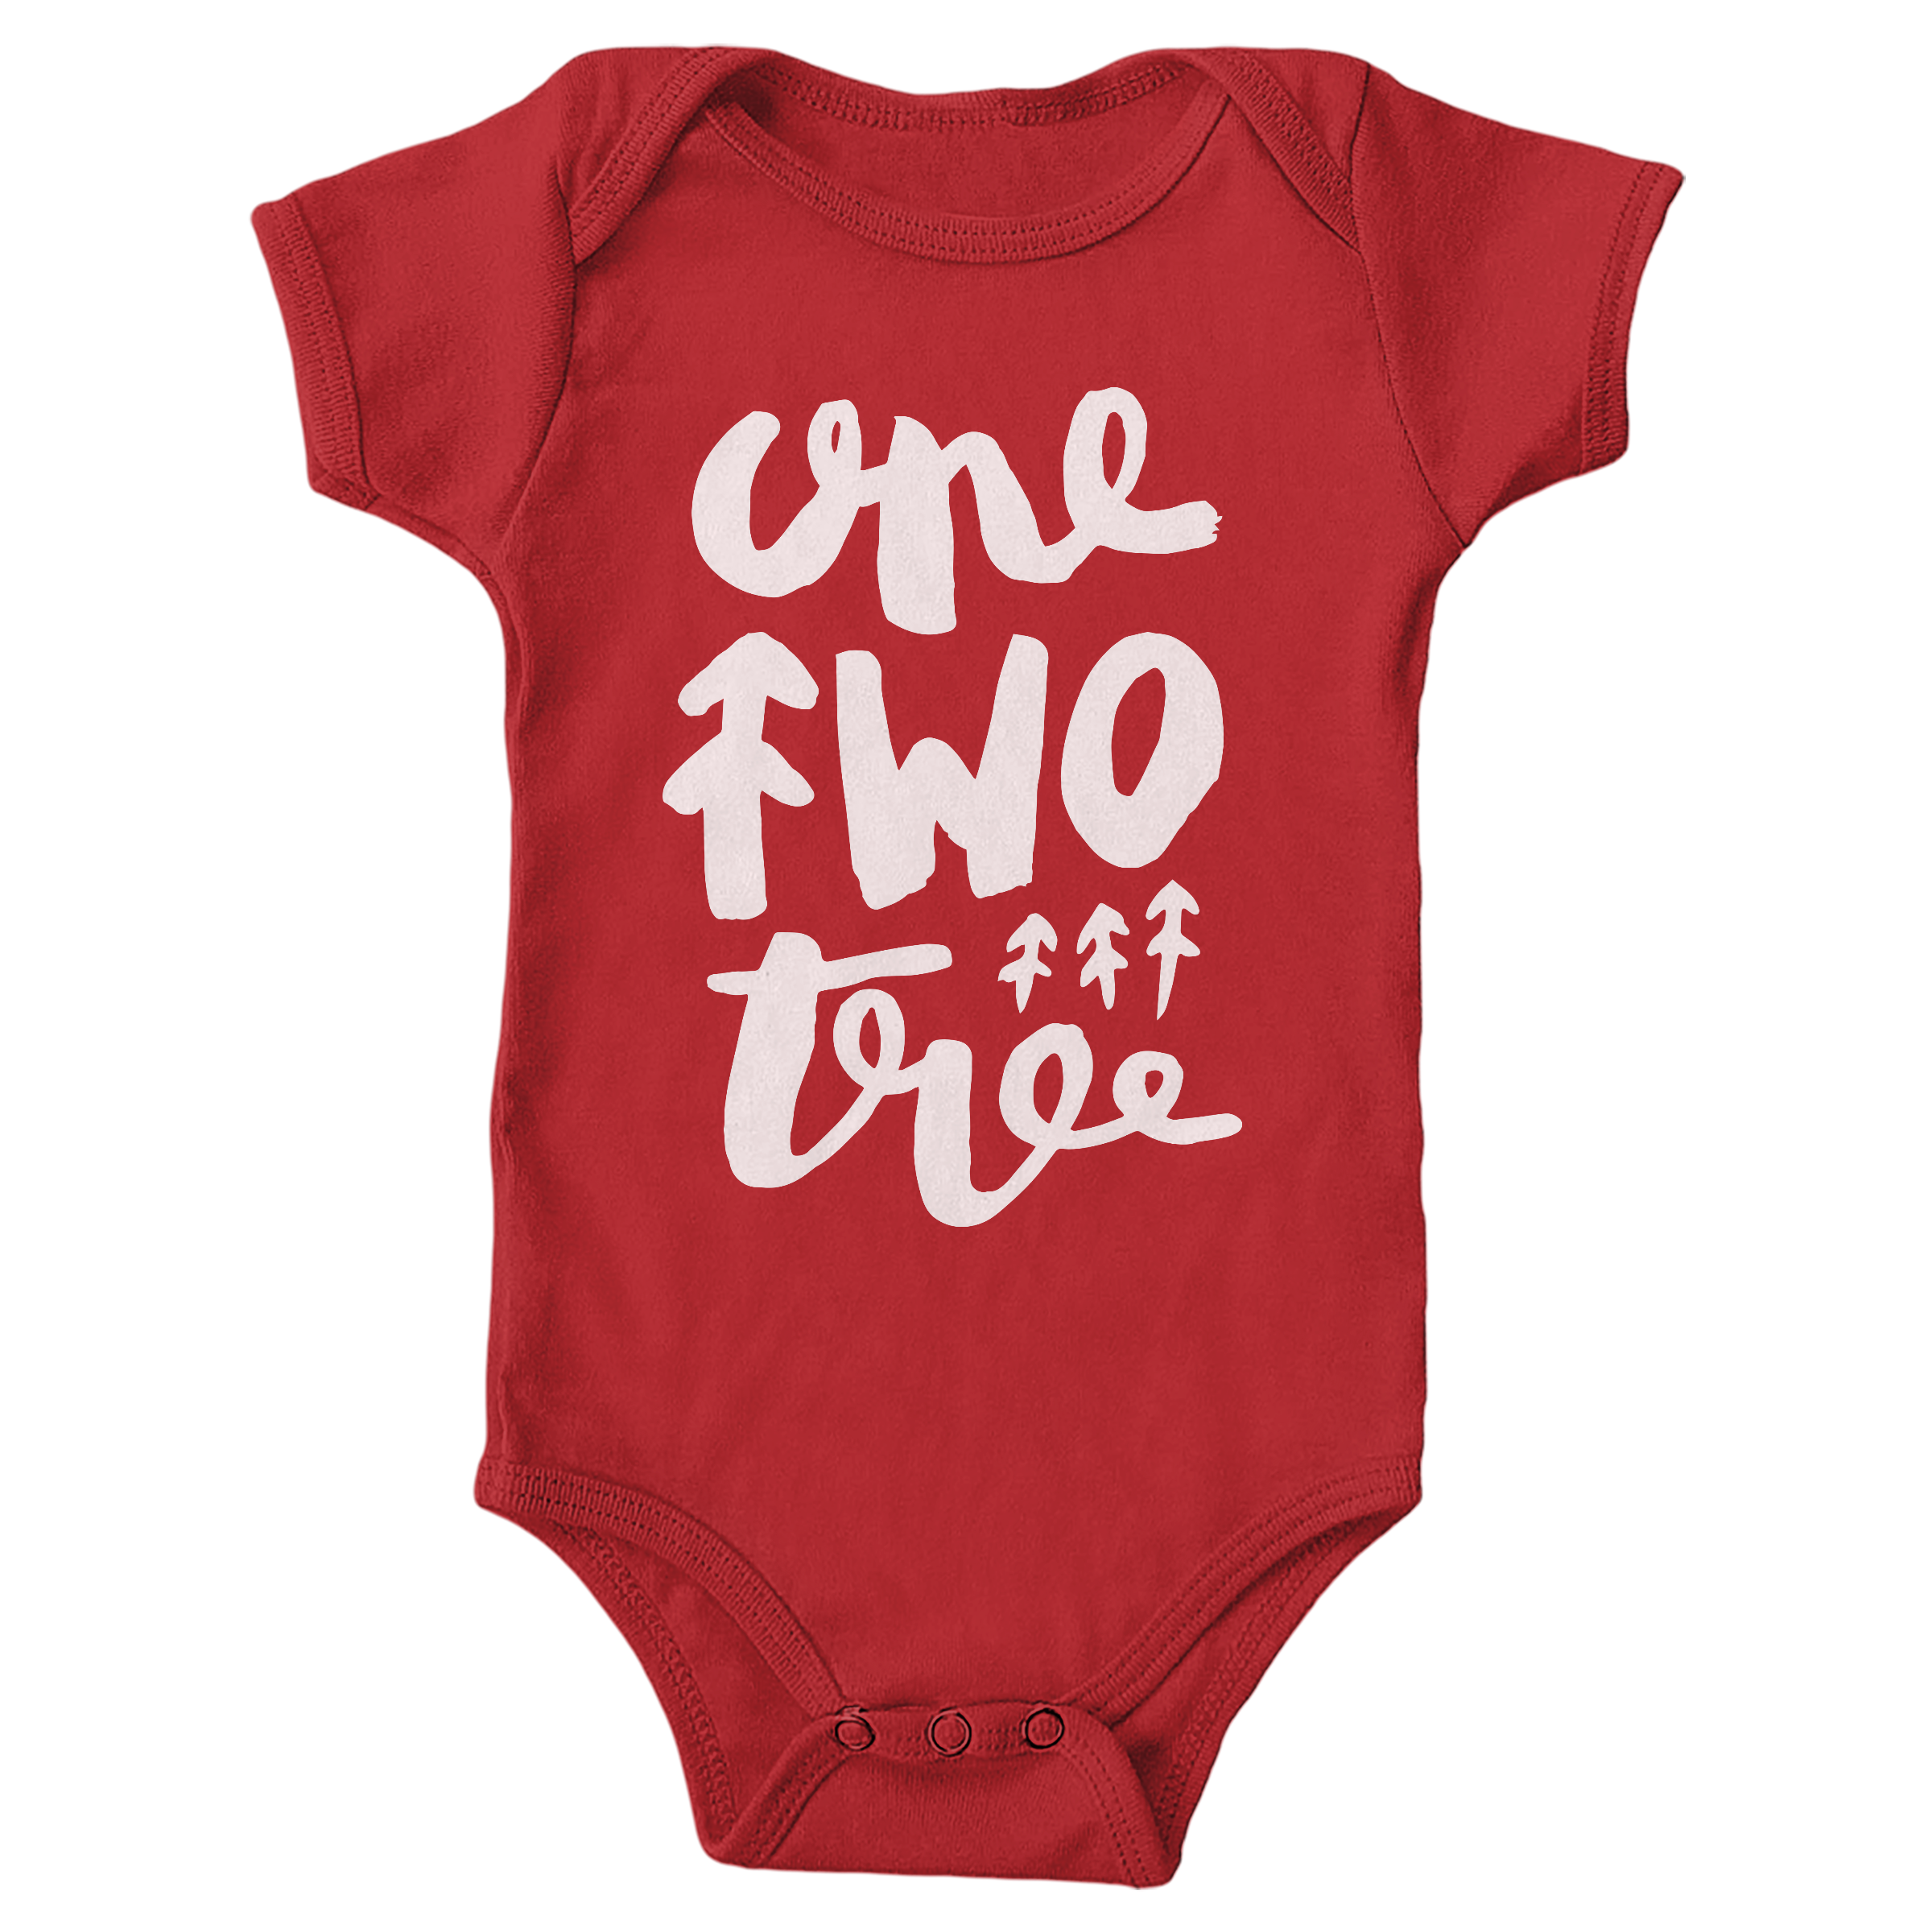 One Two Tree Red (Onesie)